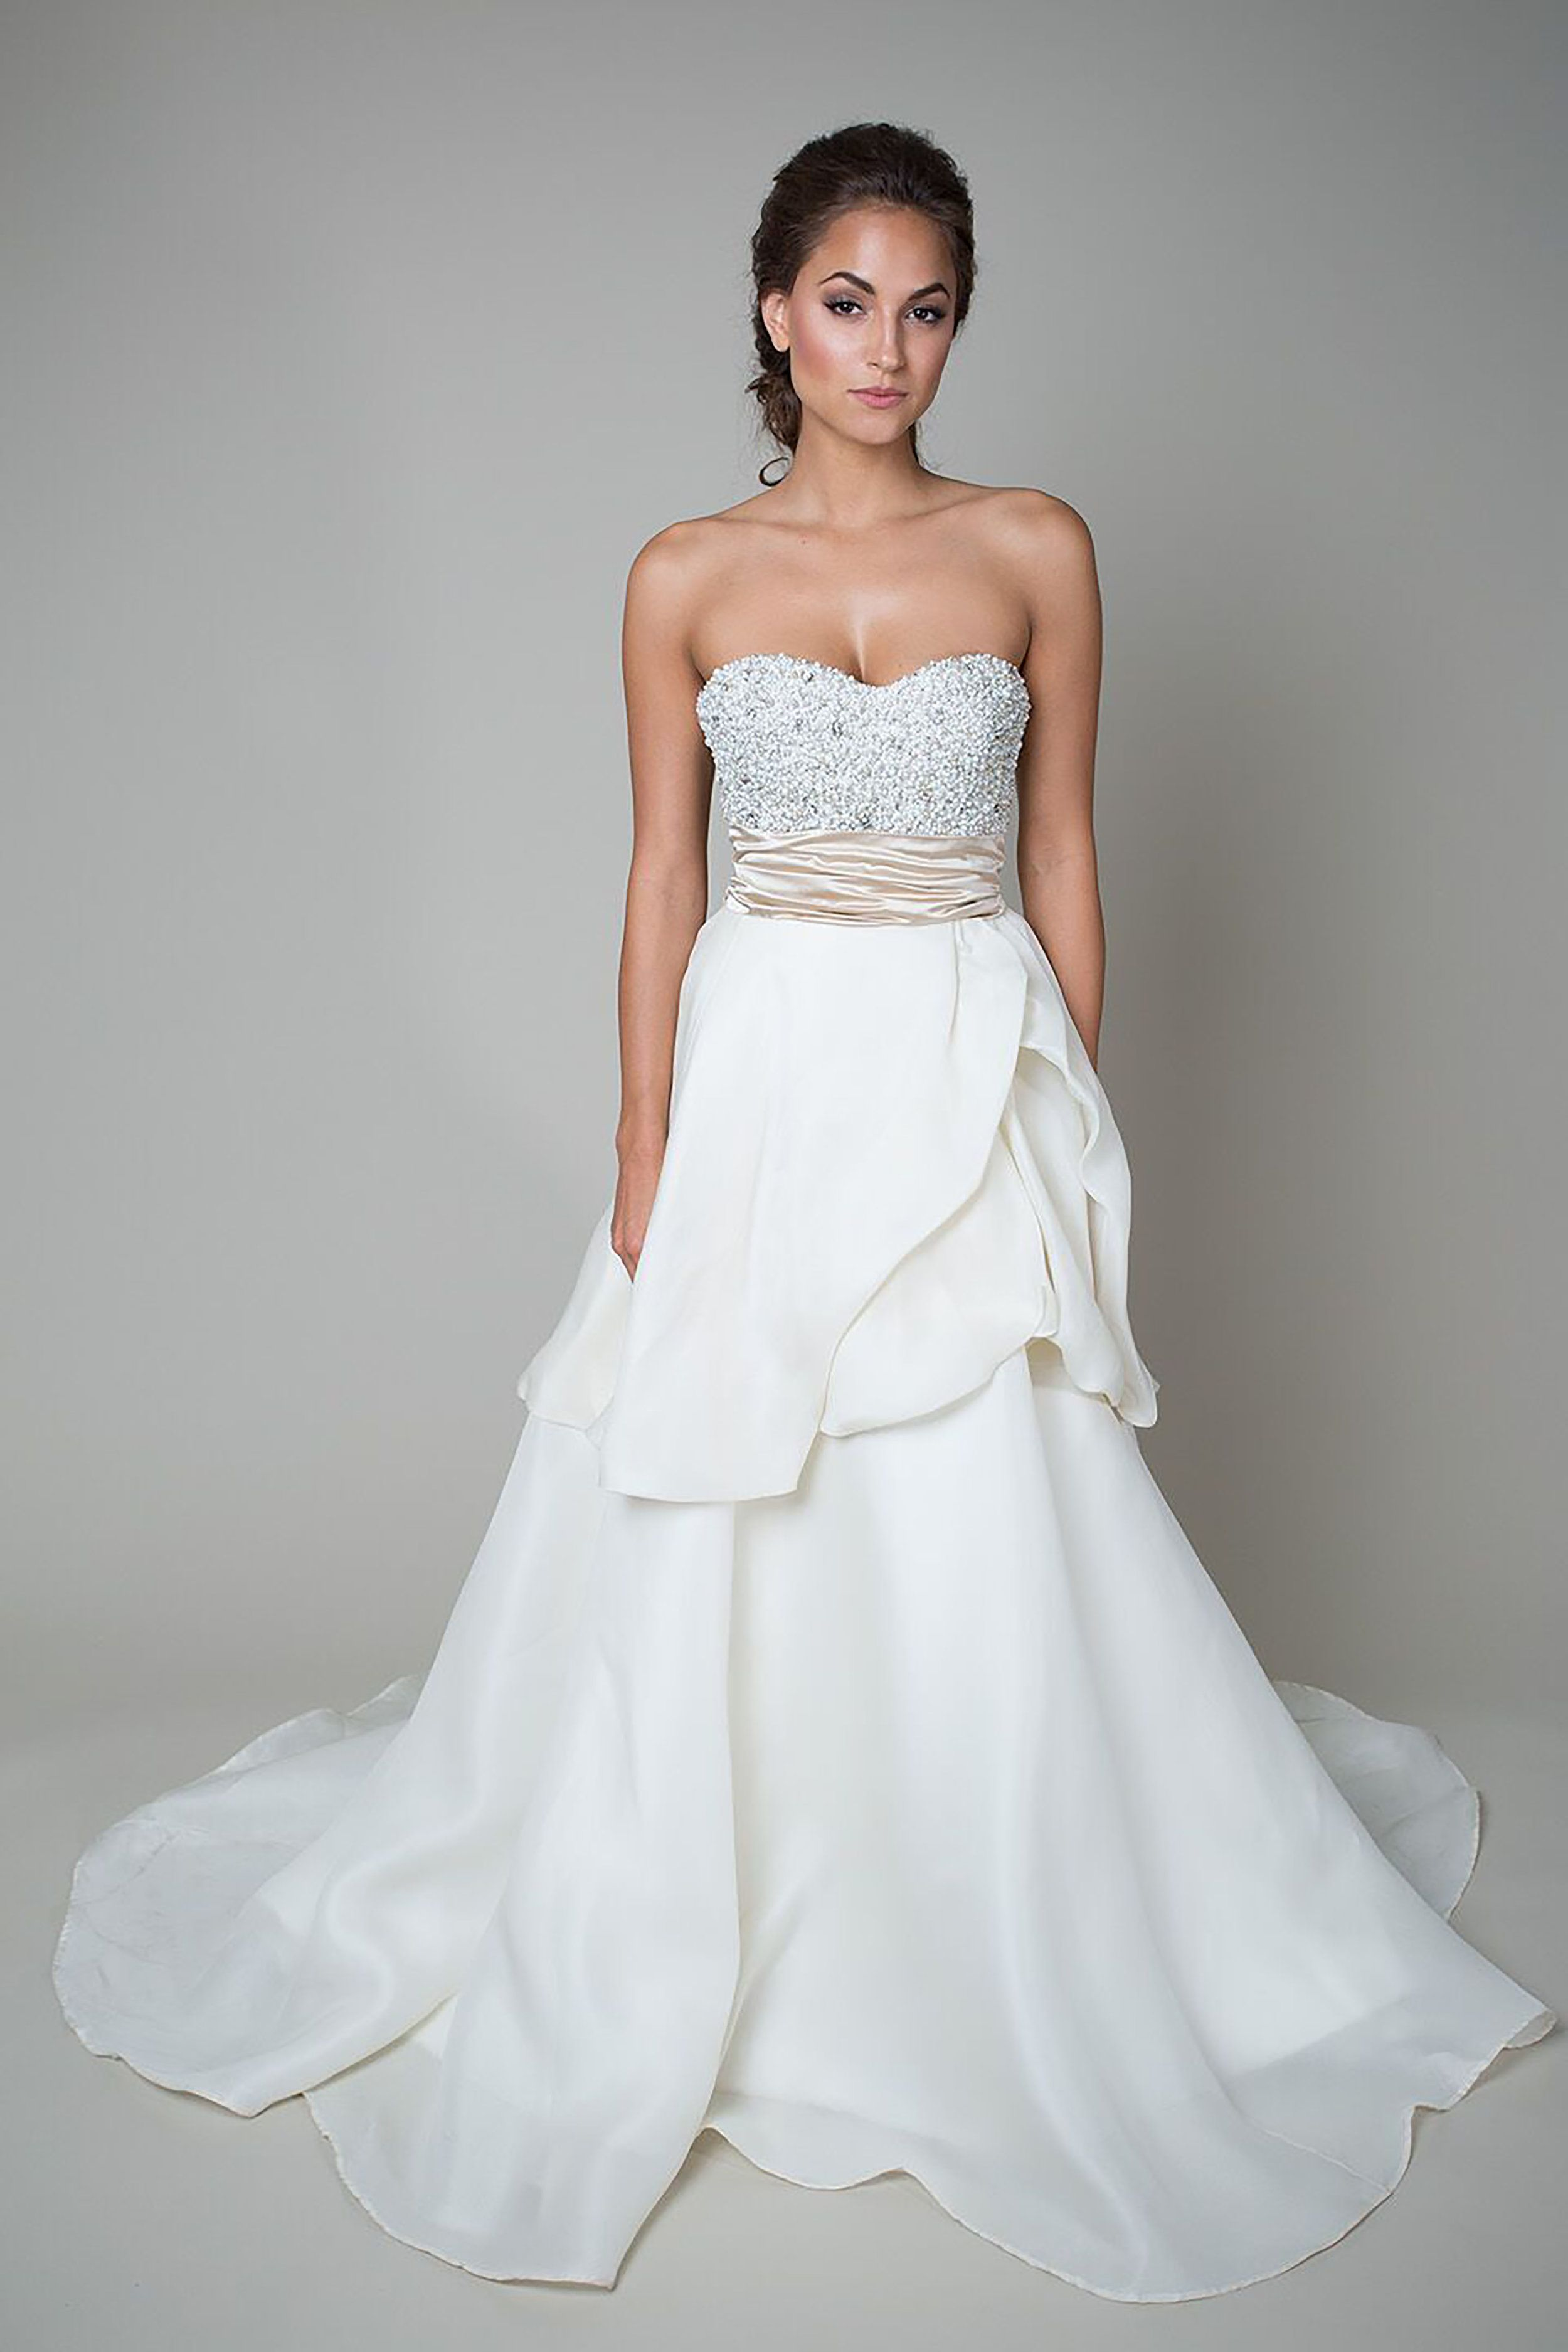 This Two Piece Bridal Separate Wedding Dress Features A Hand Beaded Bodice Of Pearls And Rh Heidi Elnora Wedding Dress Ball Gown Wedding Dress Wedding Dresses